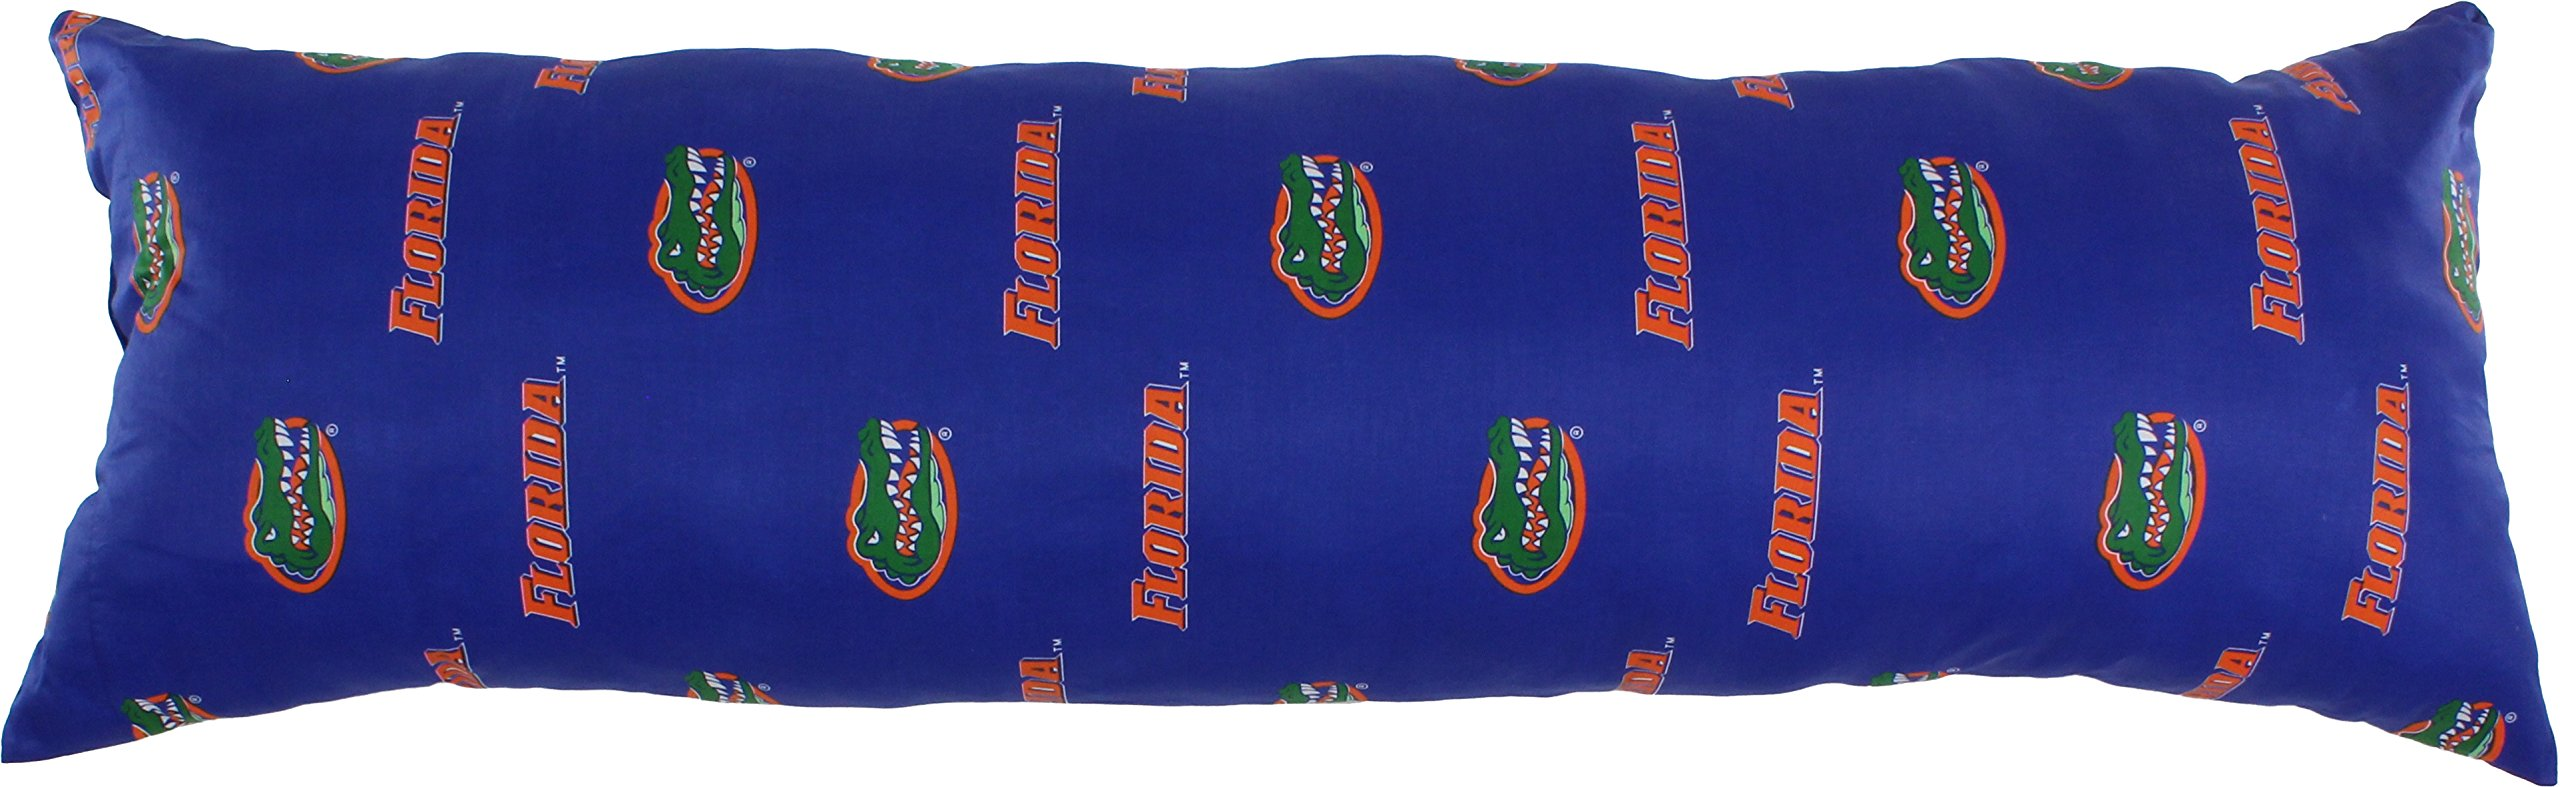 College Covers Florida Gators Printed Body Pillow - 20'' x 60''